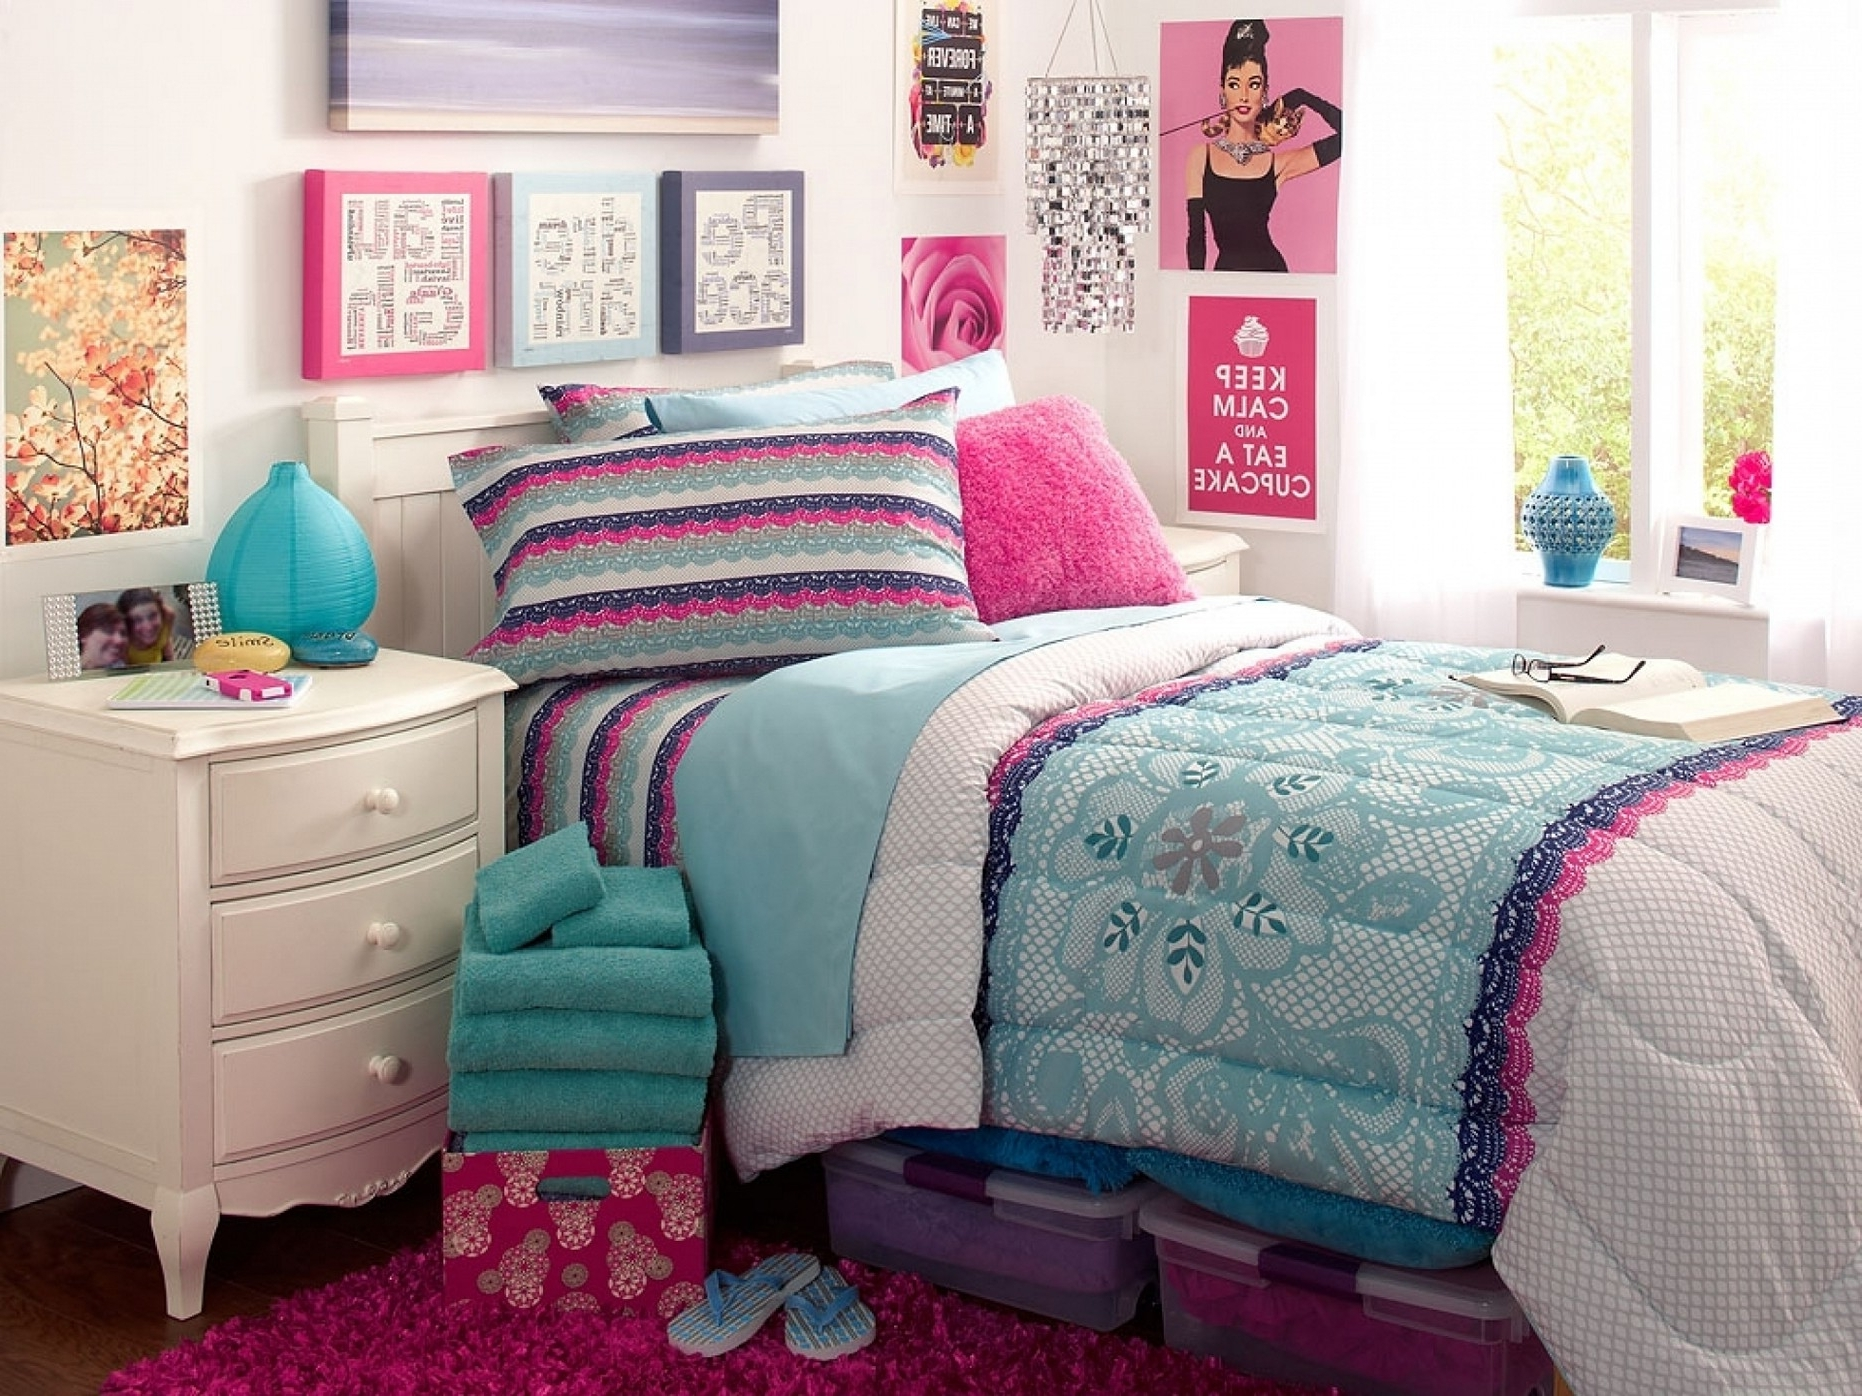 Most Current Wall Art For Teens In Bedrooms : Room Decor Ideas For Teenage Girl Bedroom Design Ideas (View 3 of 15)